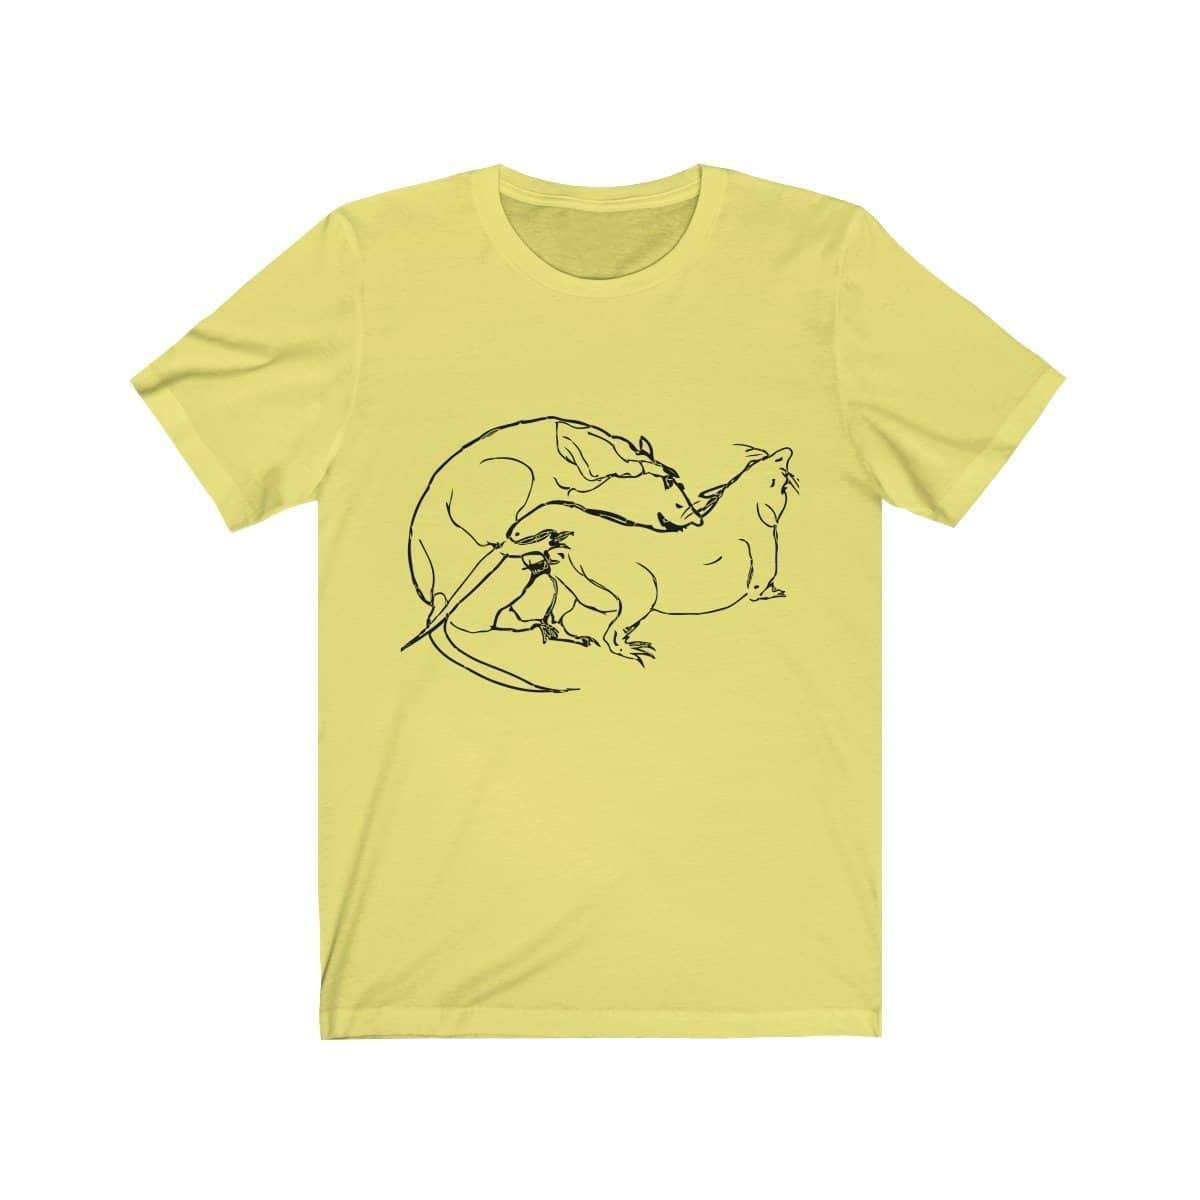 Limited Edition 100% cottonunisex t shirtby visual artist Weisstub !  Free Shipping Topqualityprint - Made in USA  This updated unisex essential fits like a well-loved favorite. Super soft cotton and excellent quality print .  .: Retail fit .: 100% Soft cotton .: Light fabric (4.2 oz/yd² (142 g/m²)) .: Tear away label .: Runs true to size     XS S M L XL 2XL 3XL     Width, in 17 18 20 23 25 26 28   Length, in 28 28 30 30 32 33 33   Sleeve length, in 9 9 10 10 10 10